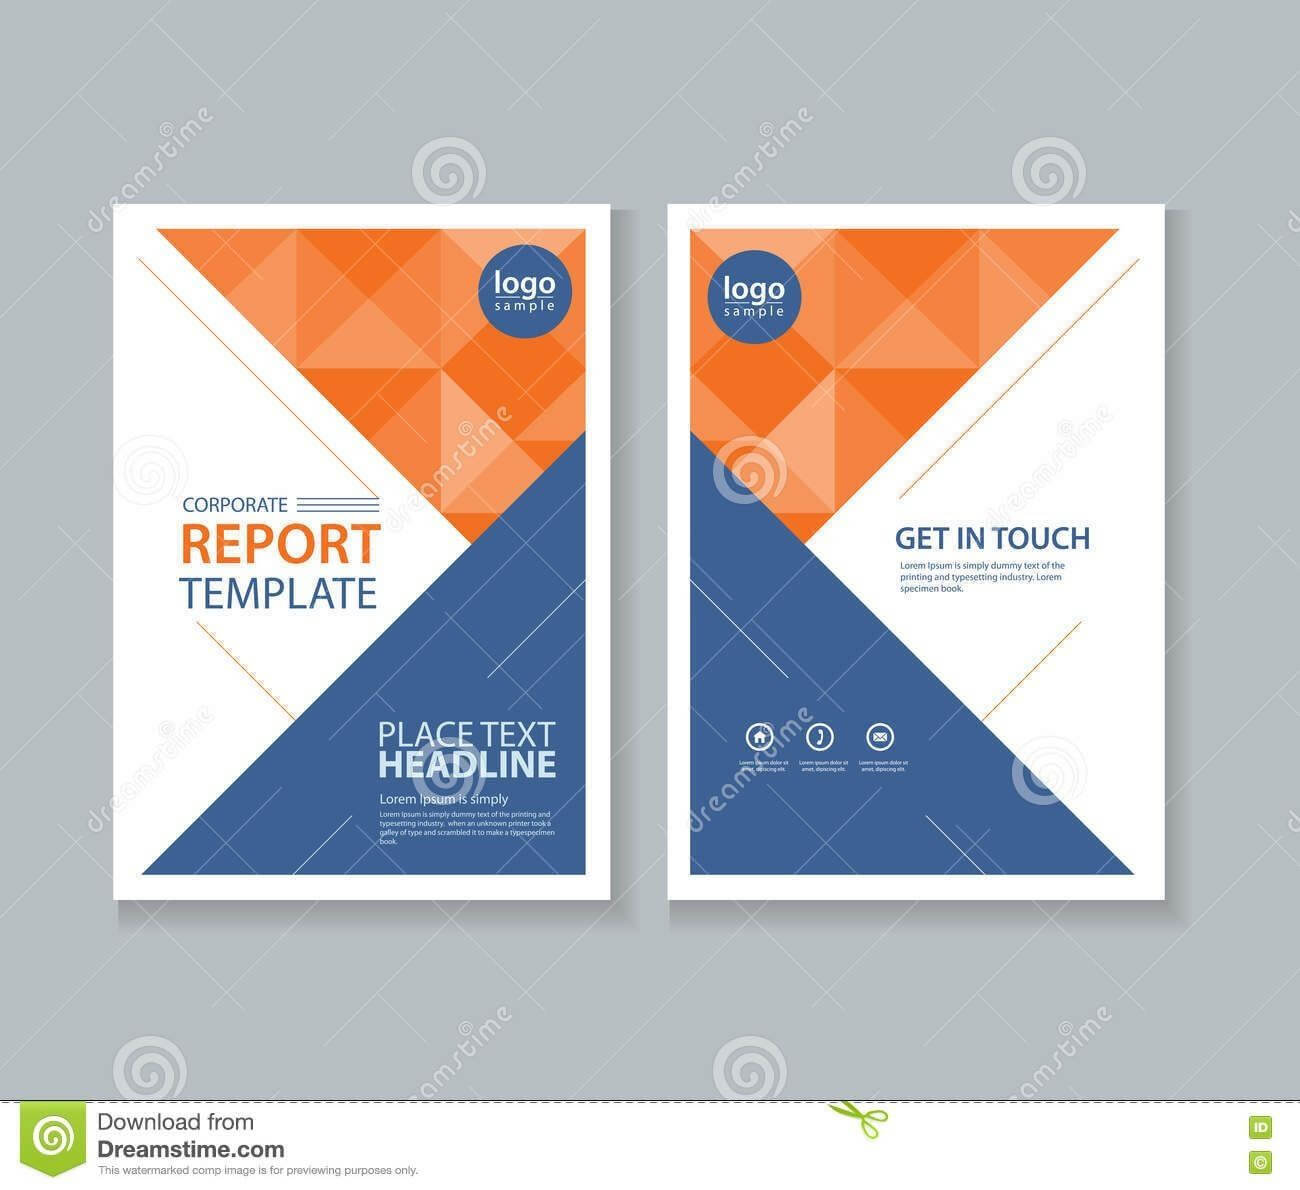 Report Cover Design Templates - Hatch.urbanskript.co For pertaining to Cover Pages For Word Templates